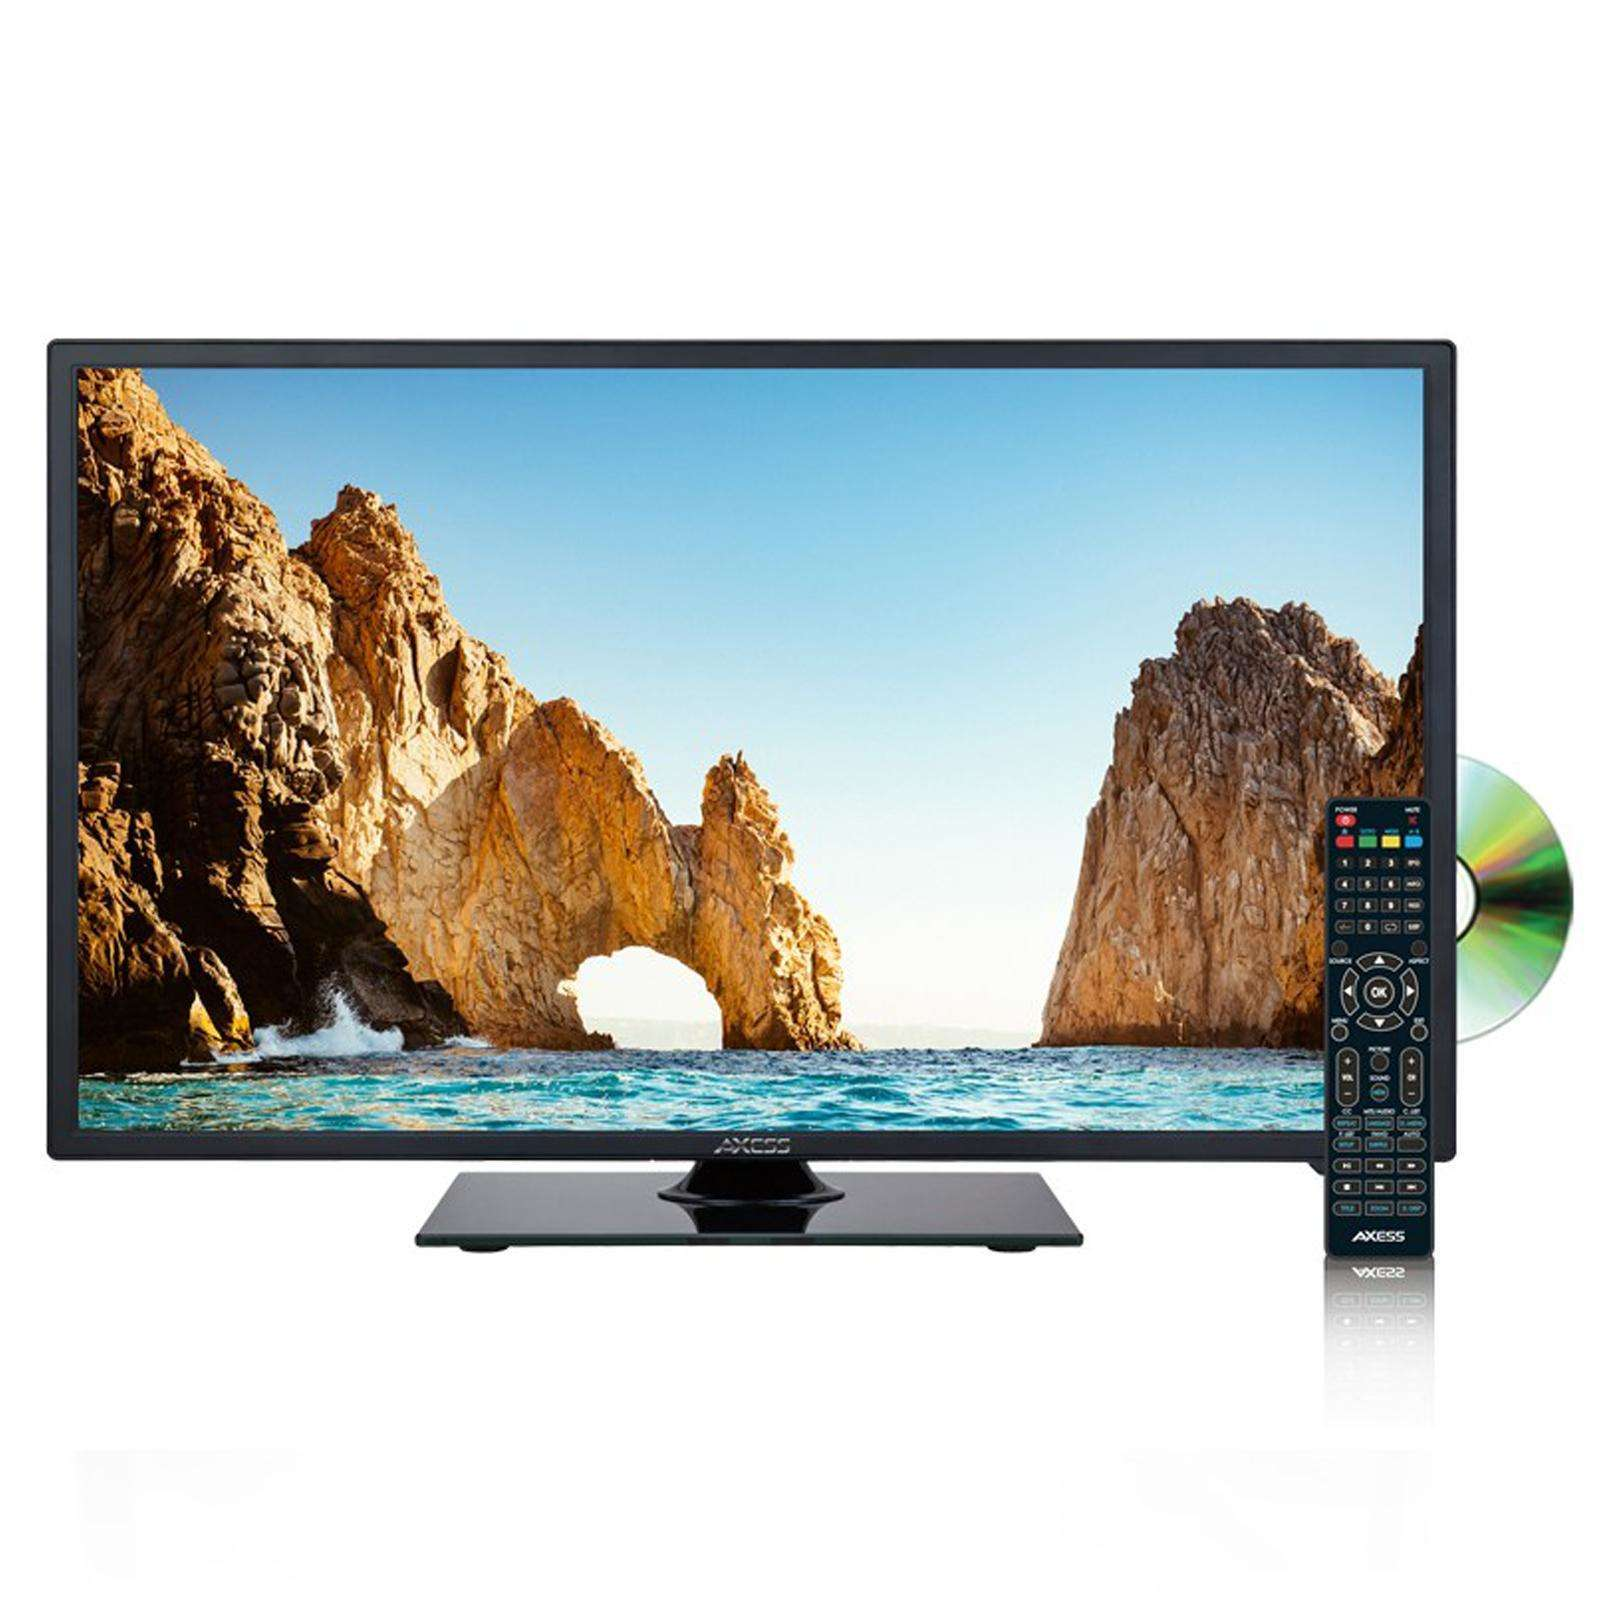 Axess 18.5 Inch High-Definition LED TV with DVD Player